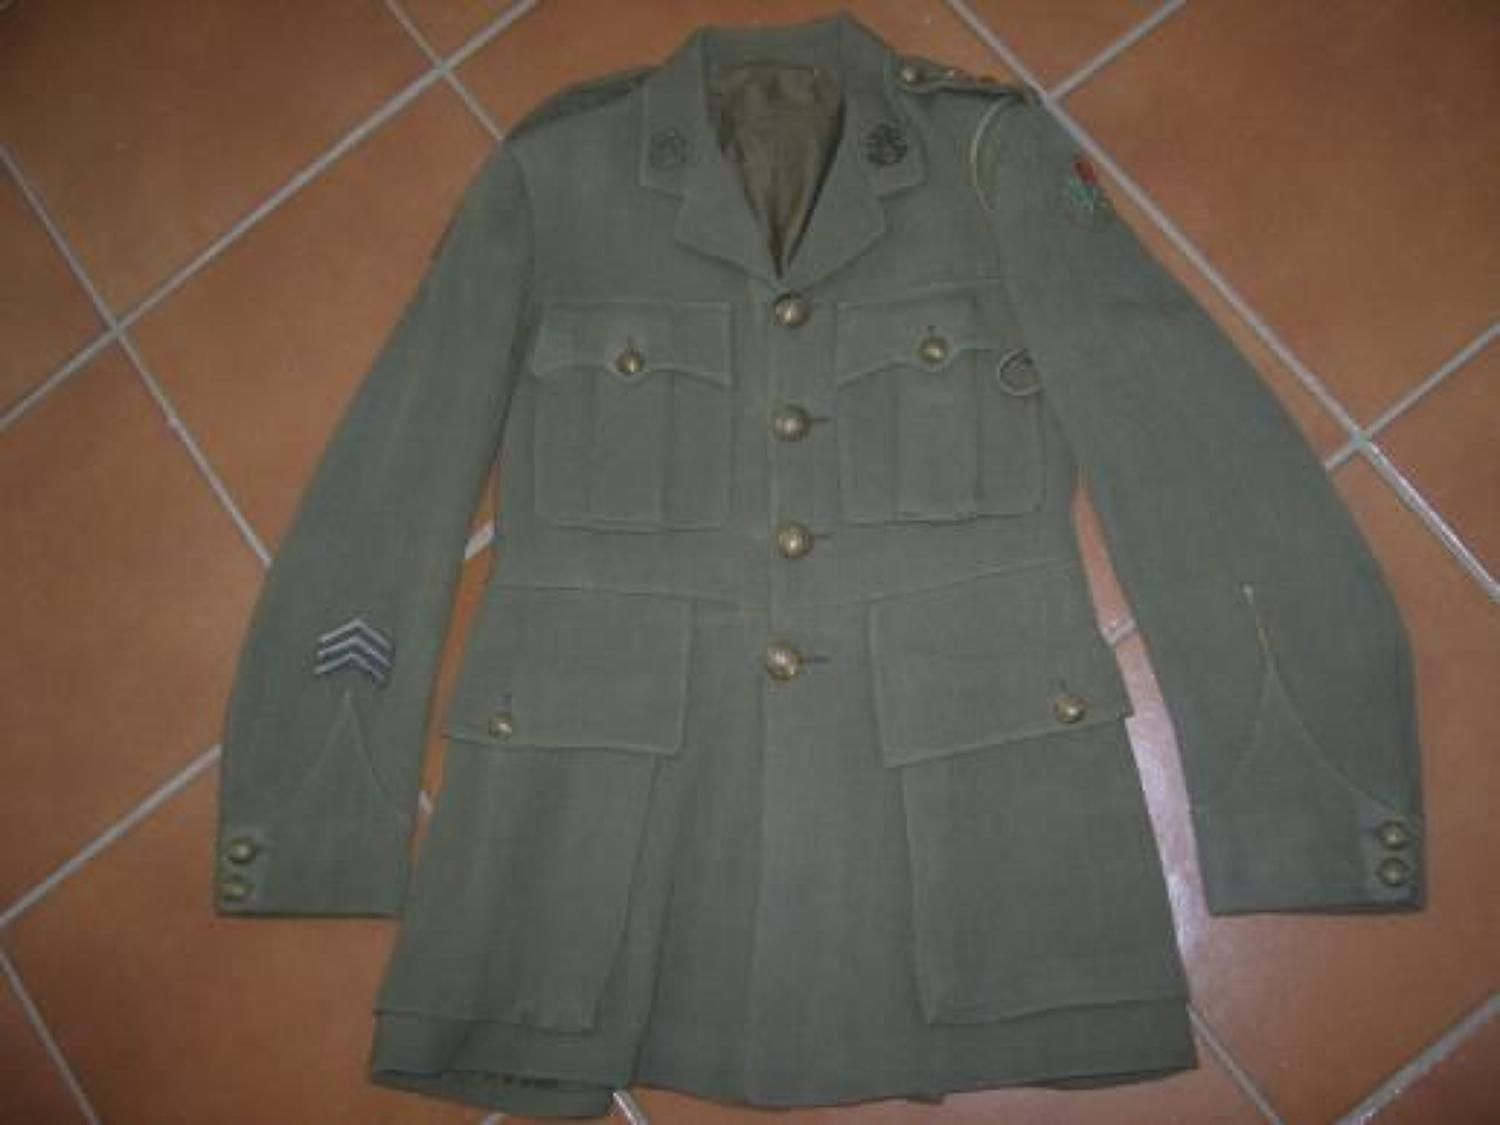 WW1 BRITISH OFFICERS TUNIC TO 1/5th SOUTH LANCASHIRE REGIMENT